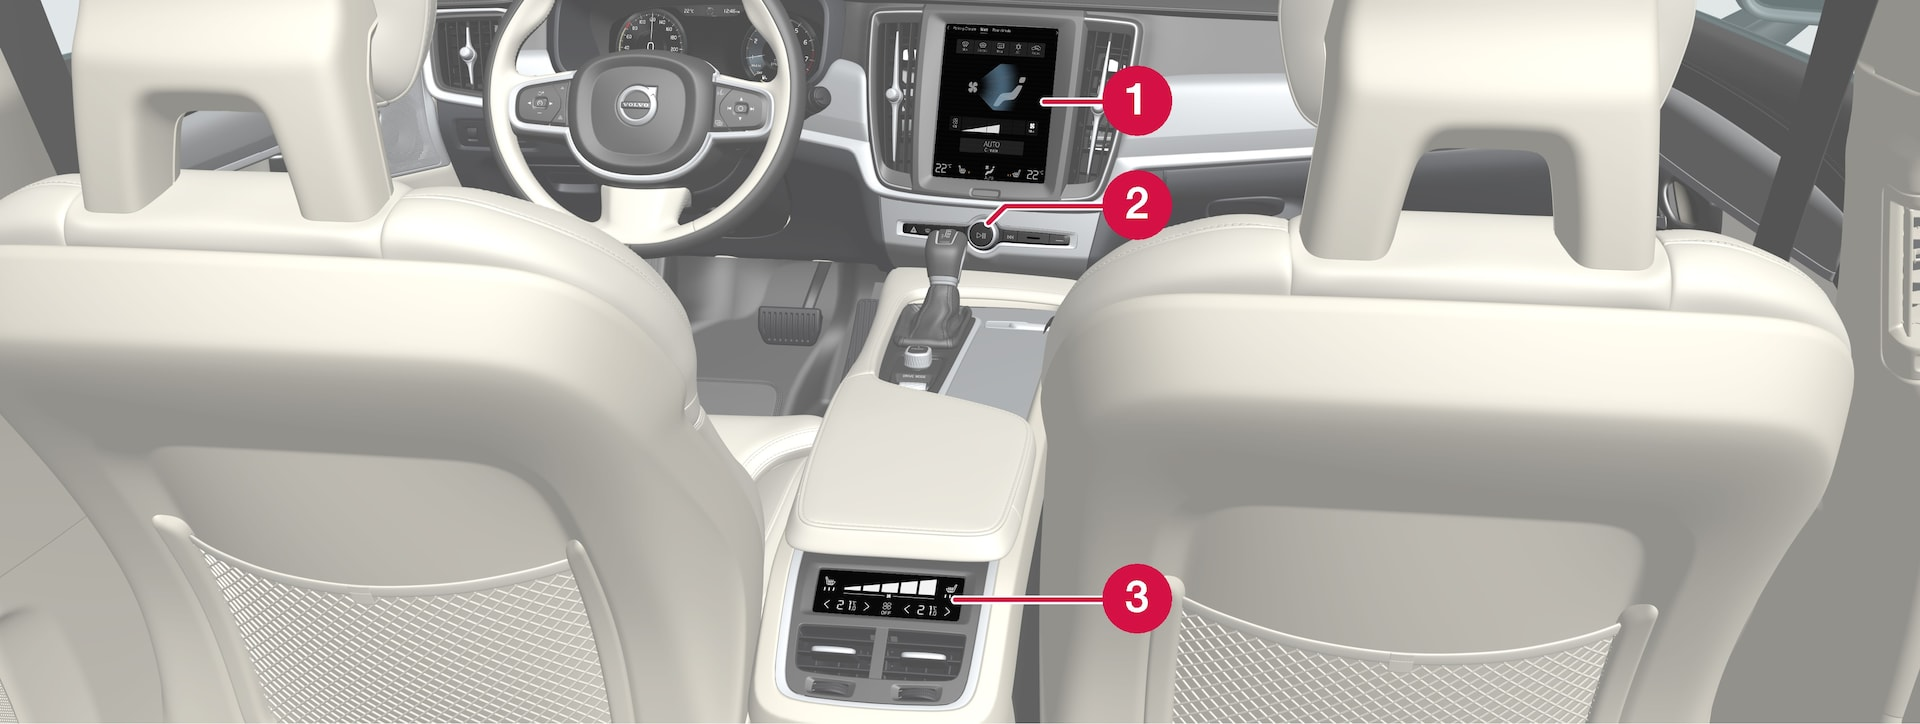 P5-1617-S90/V90–Climate–Control overview